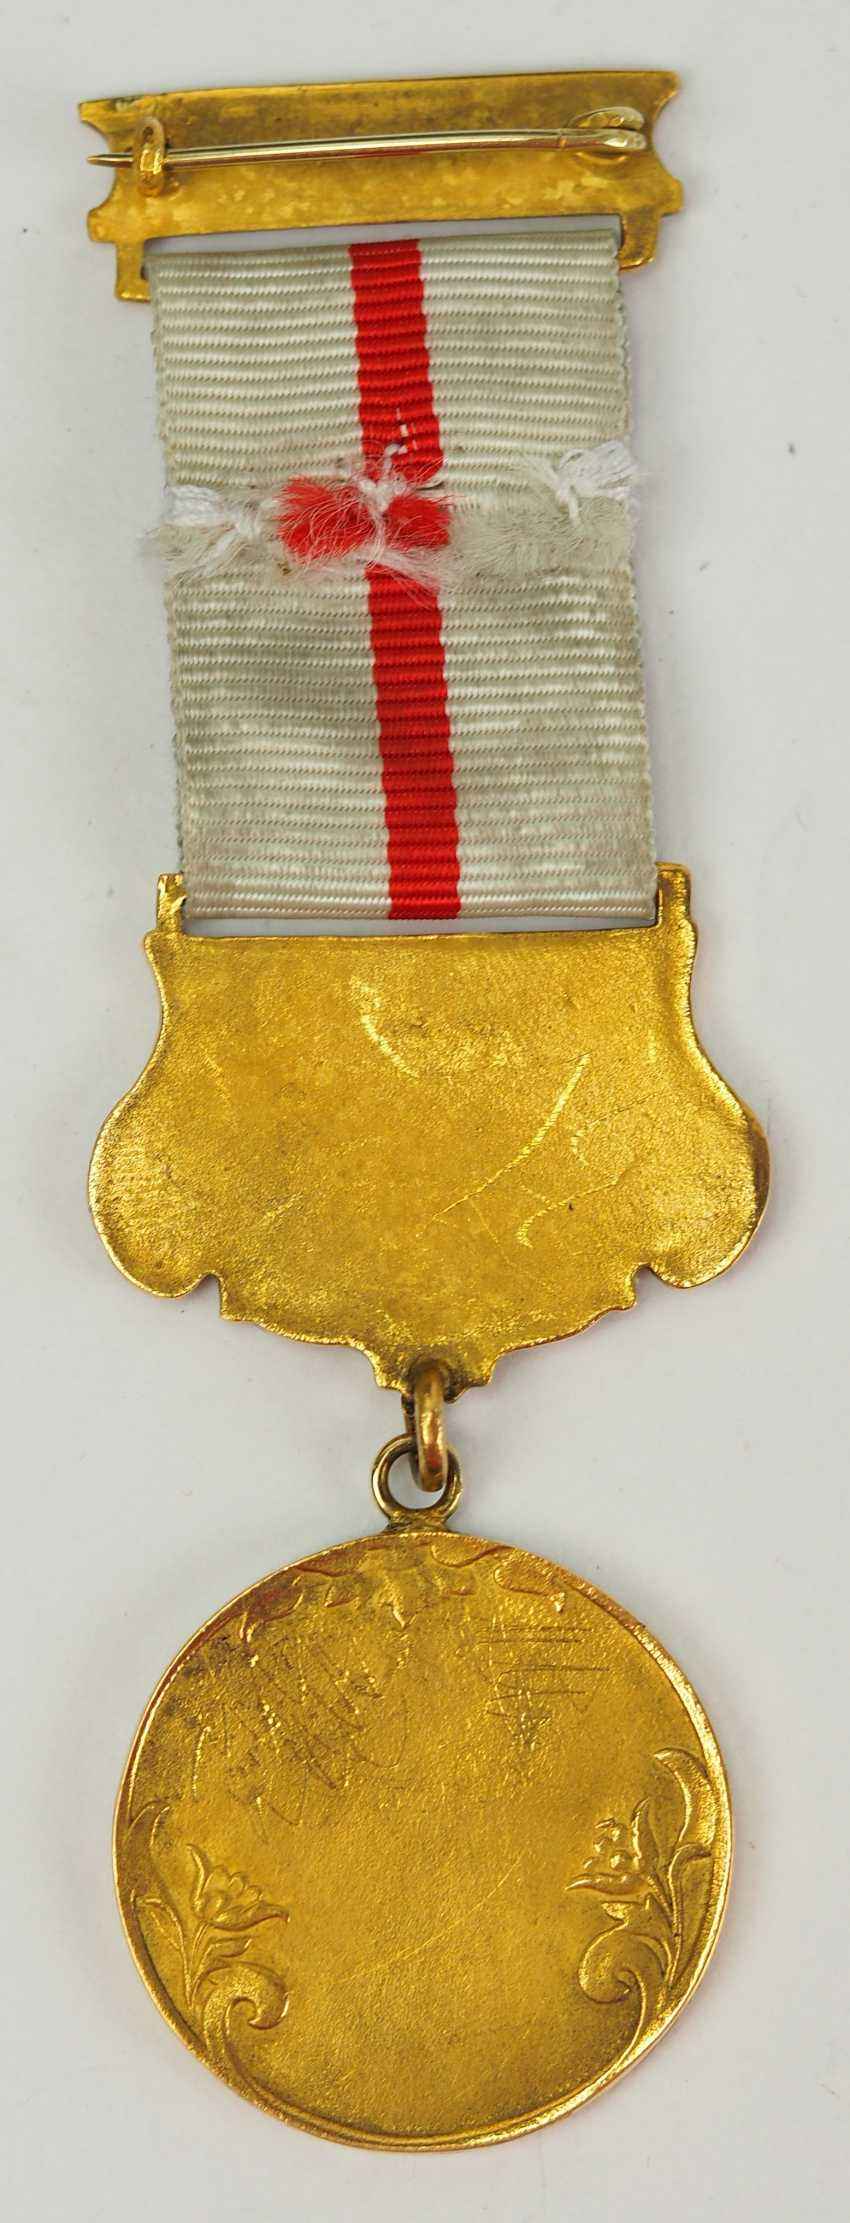 Turkey: medal of the Red Crescent moon, 2. Model in Gold, with oak-break. - photo 4